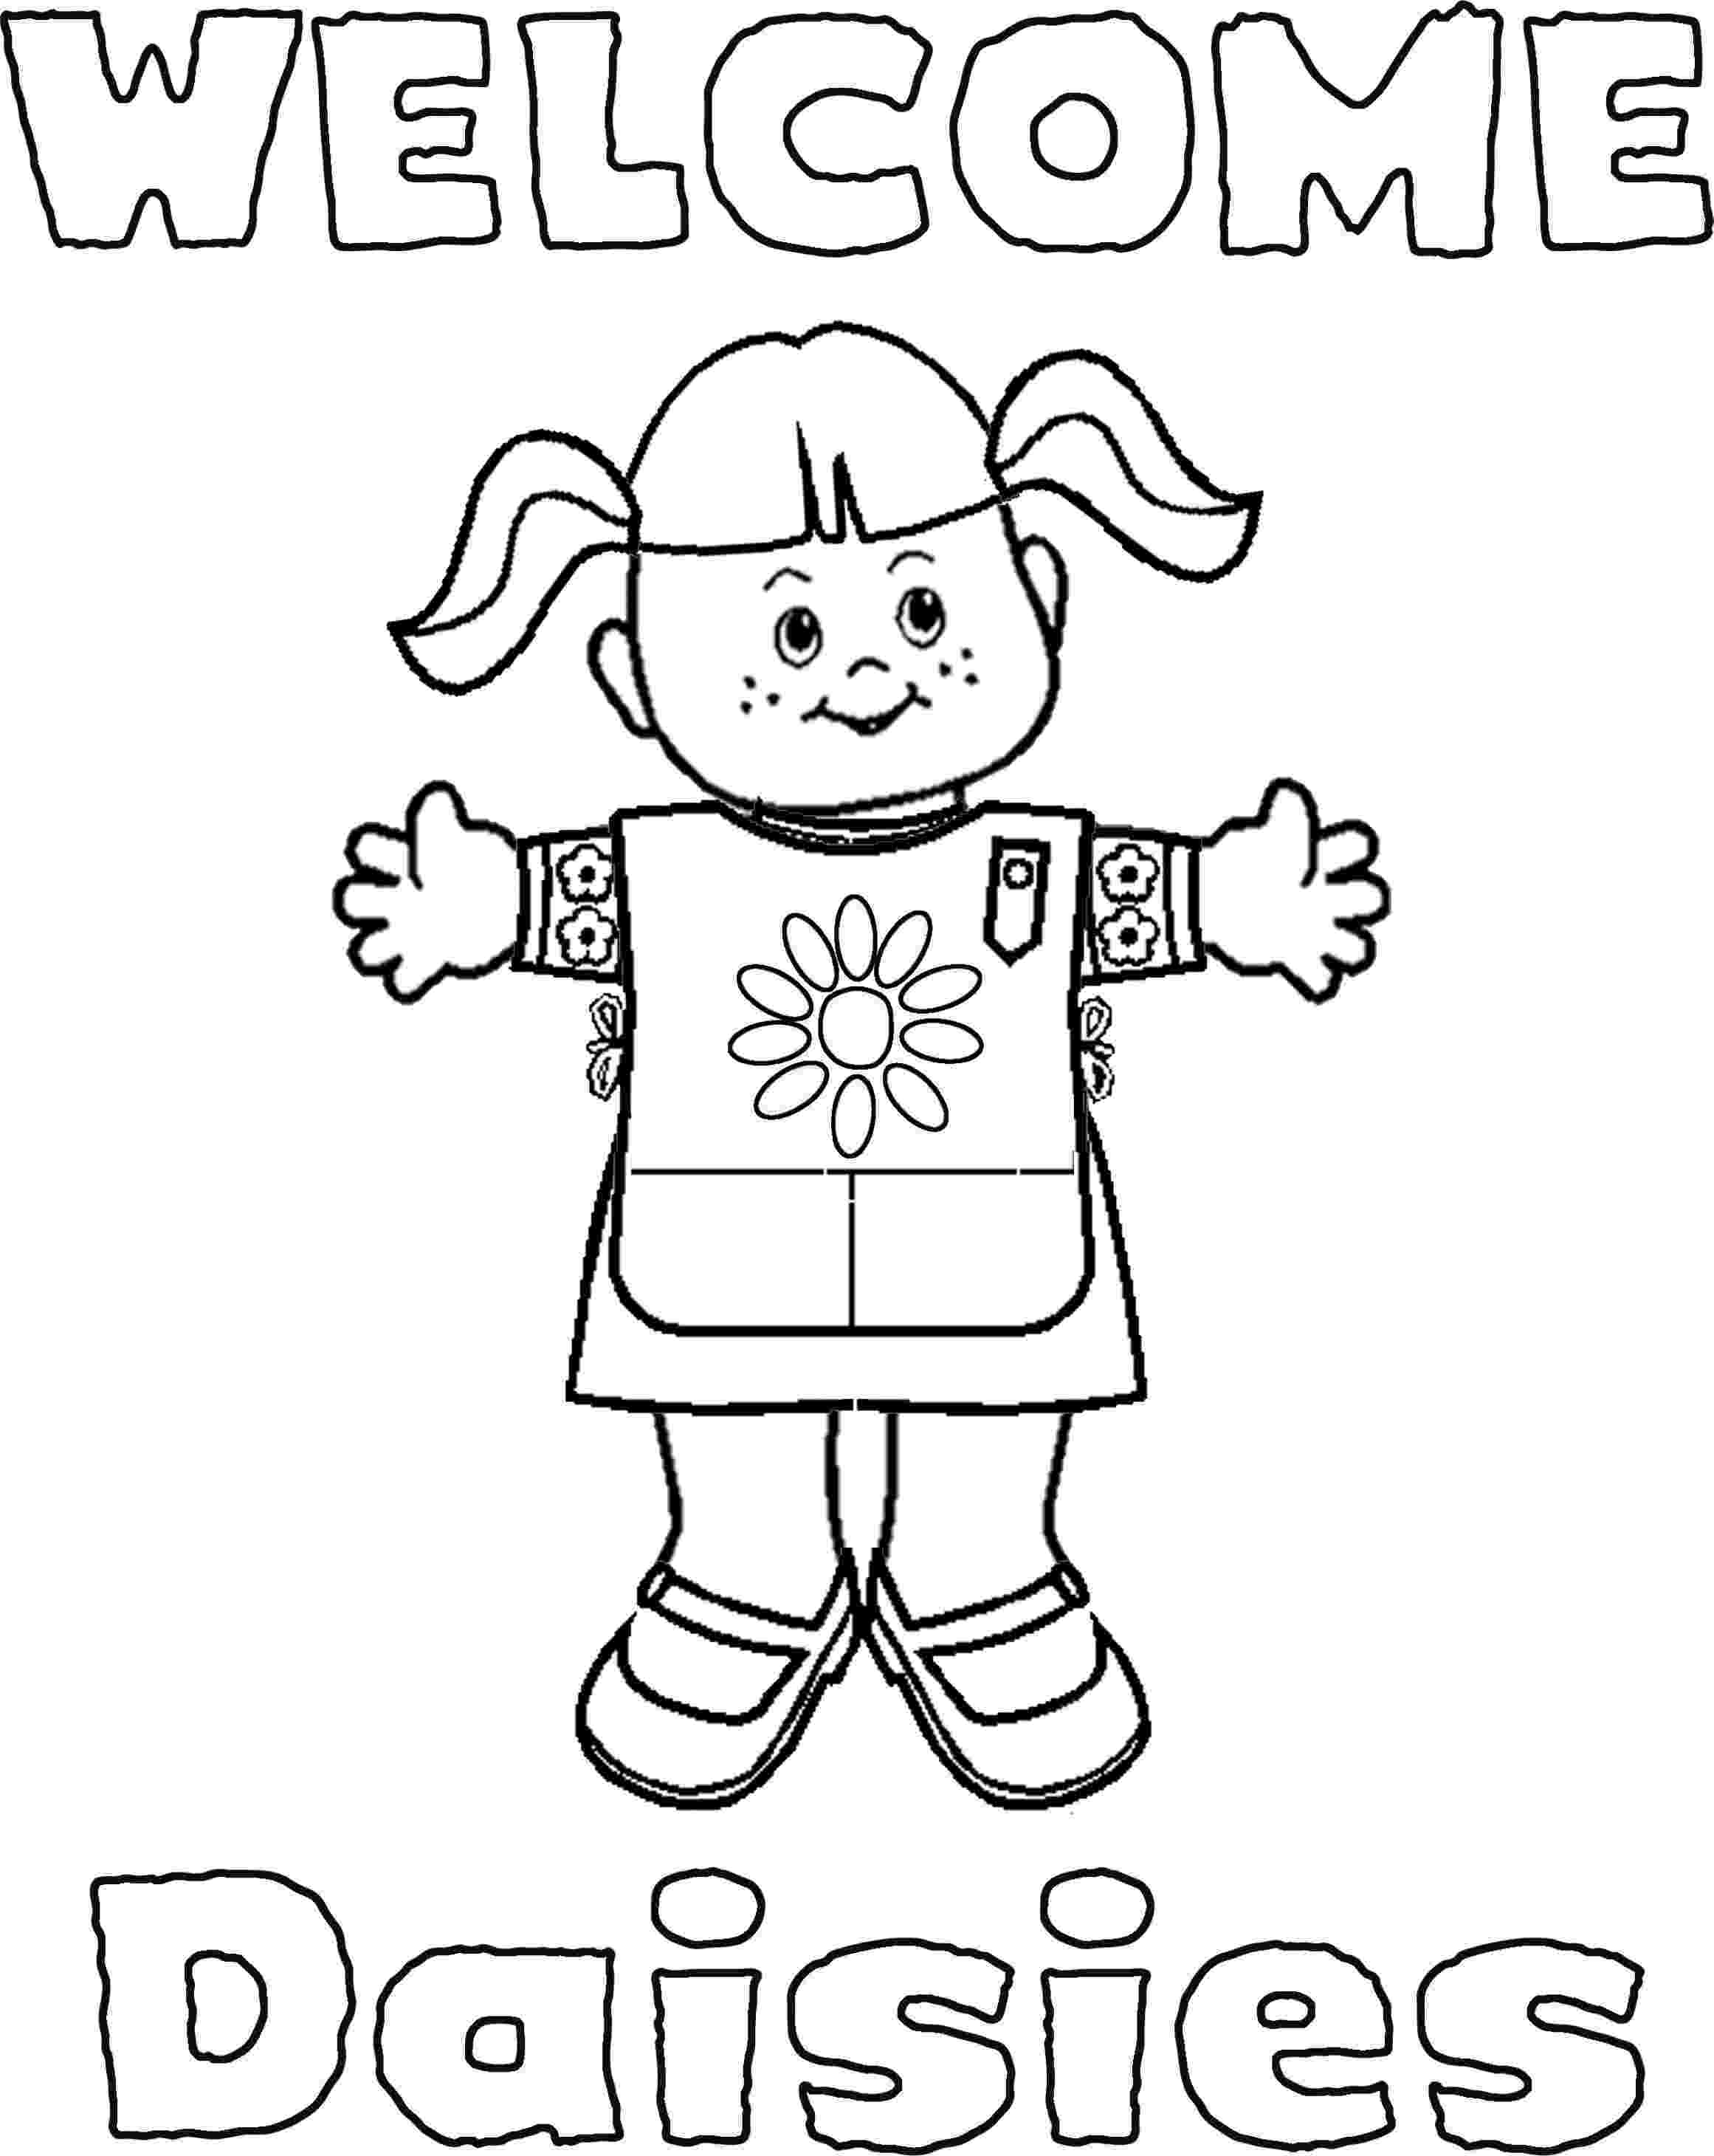 girl scout coloring pages for daisies free printable daisy scout coloring pages high quality girl scout for coloring pages daisies